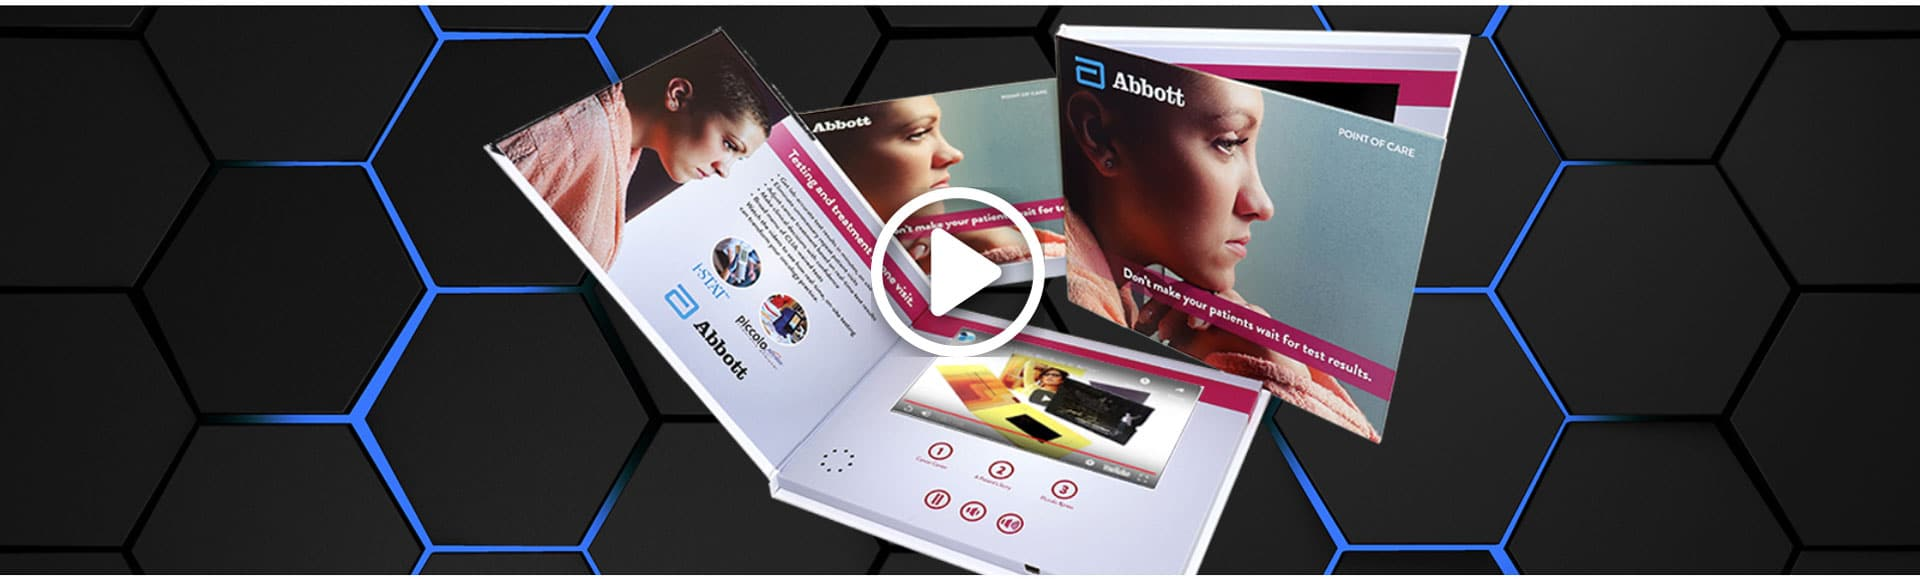 See the MediaFast video brochure in action video